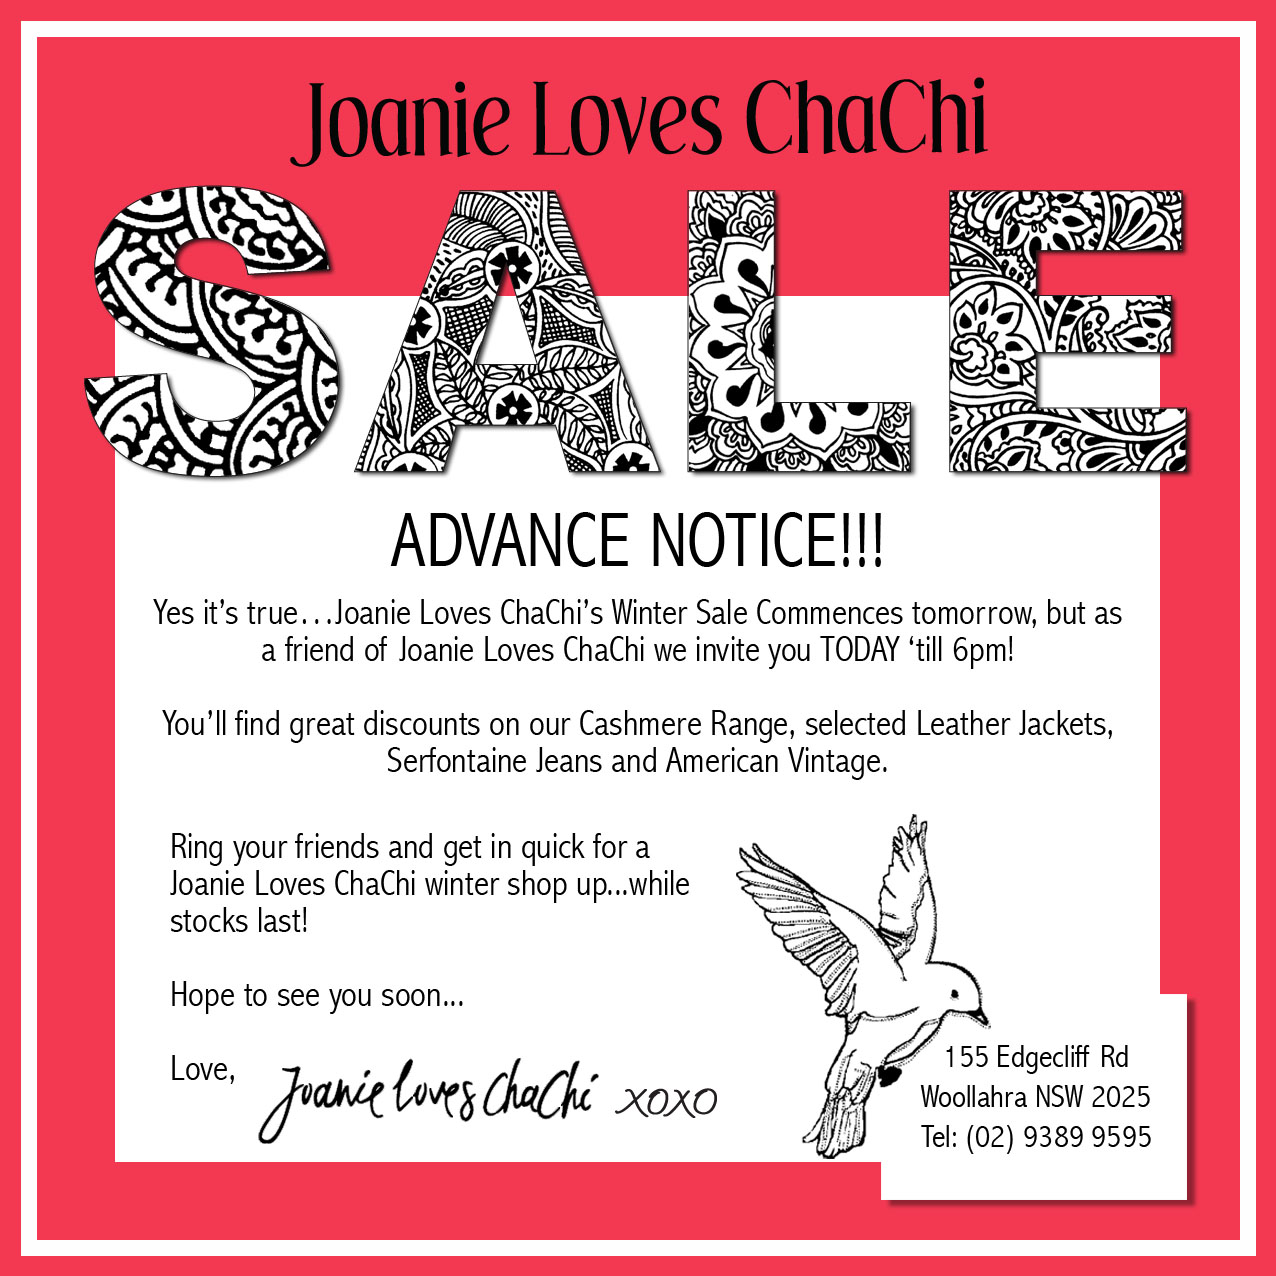 260 best images about - JoaNie LoVes ChaChI - on Pinterest